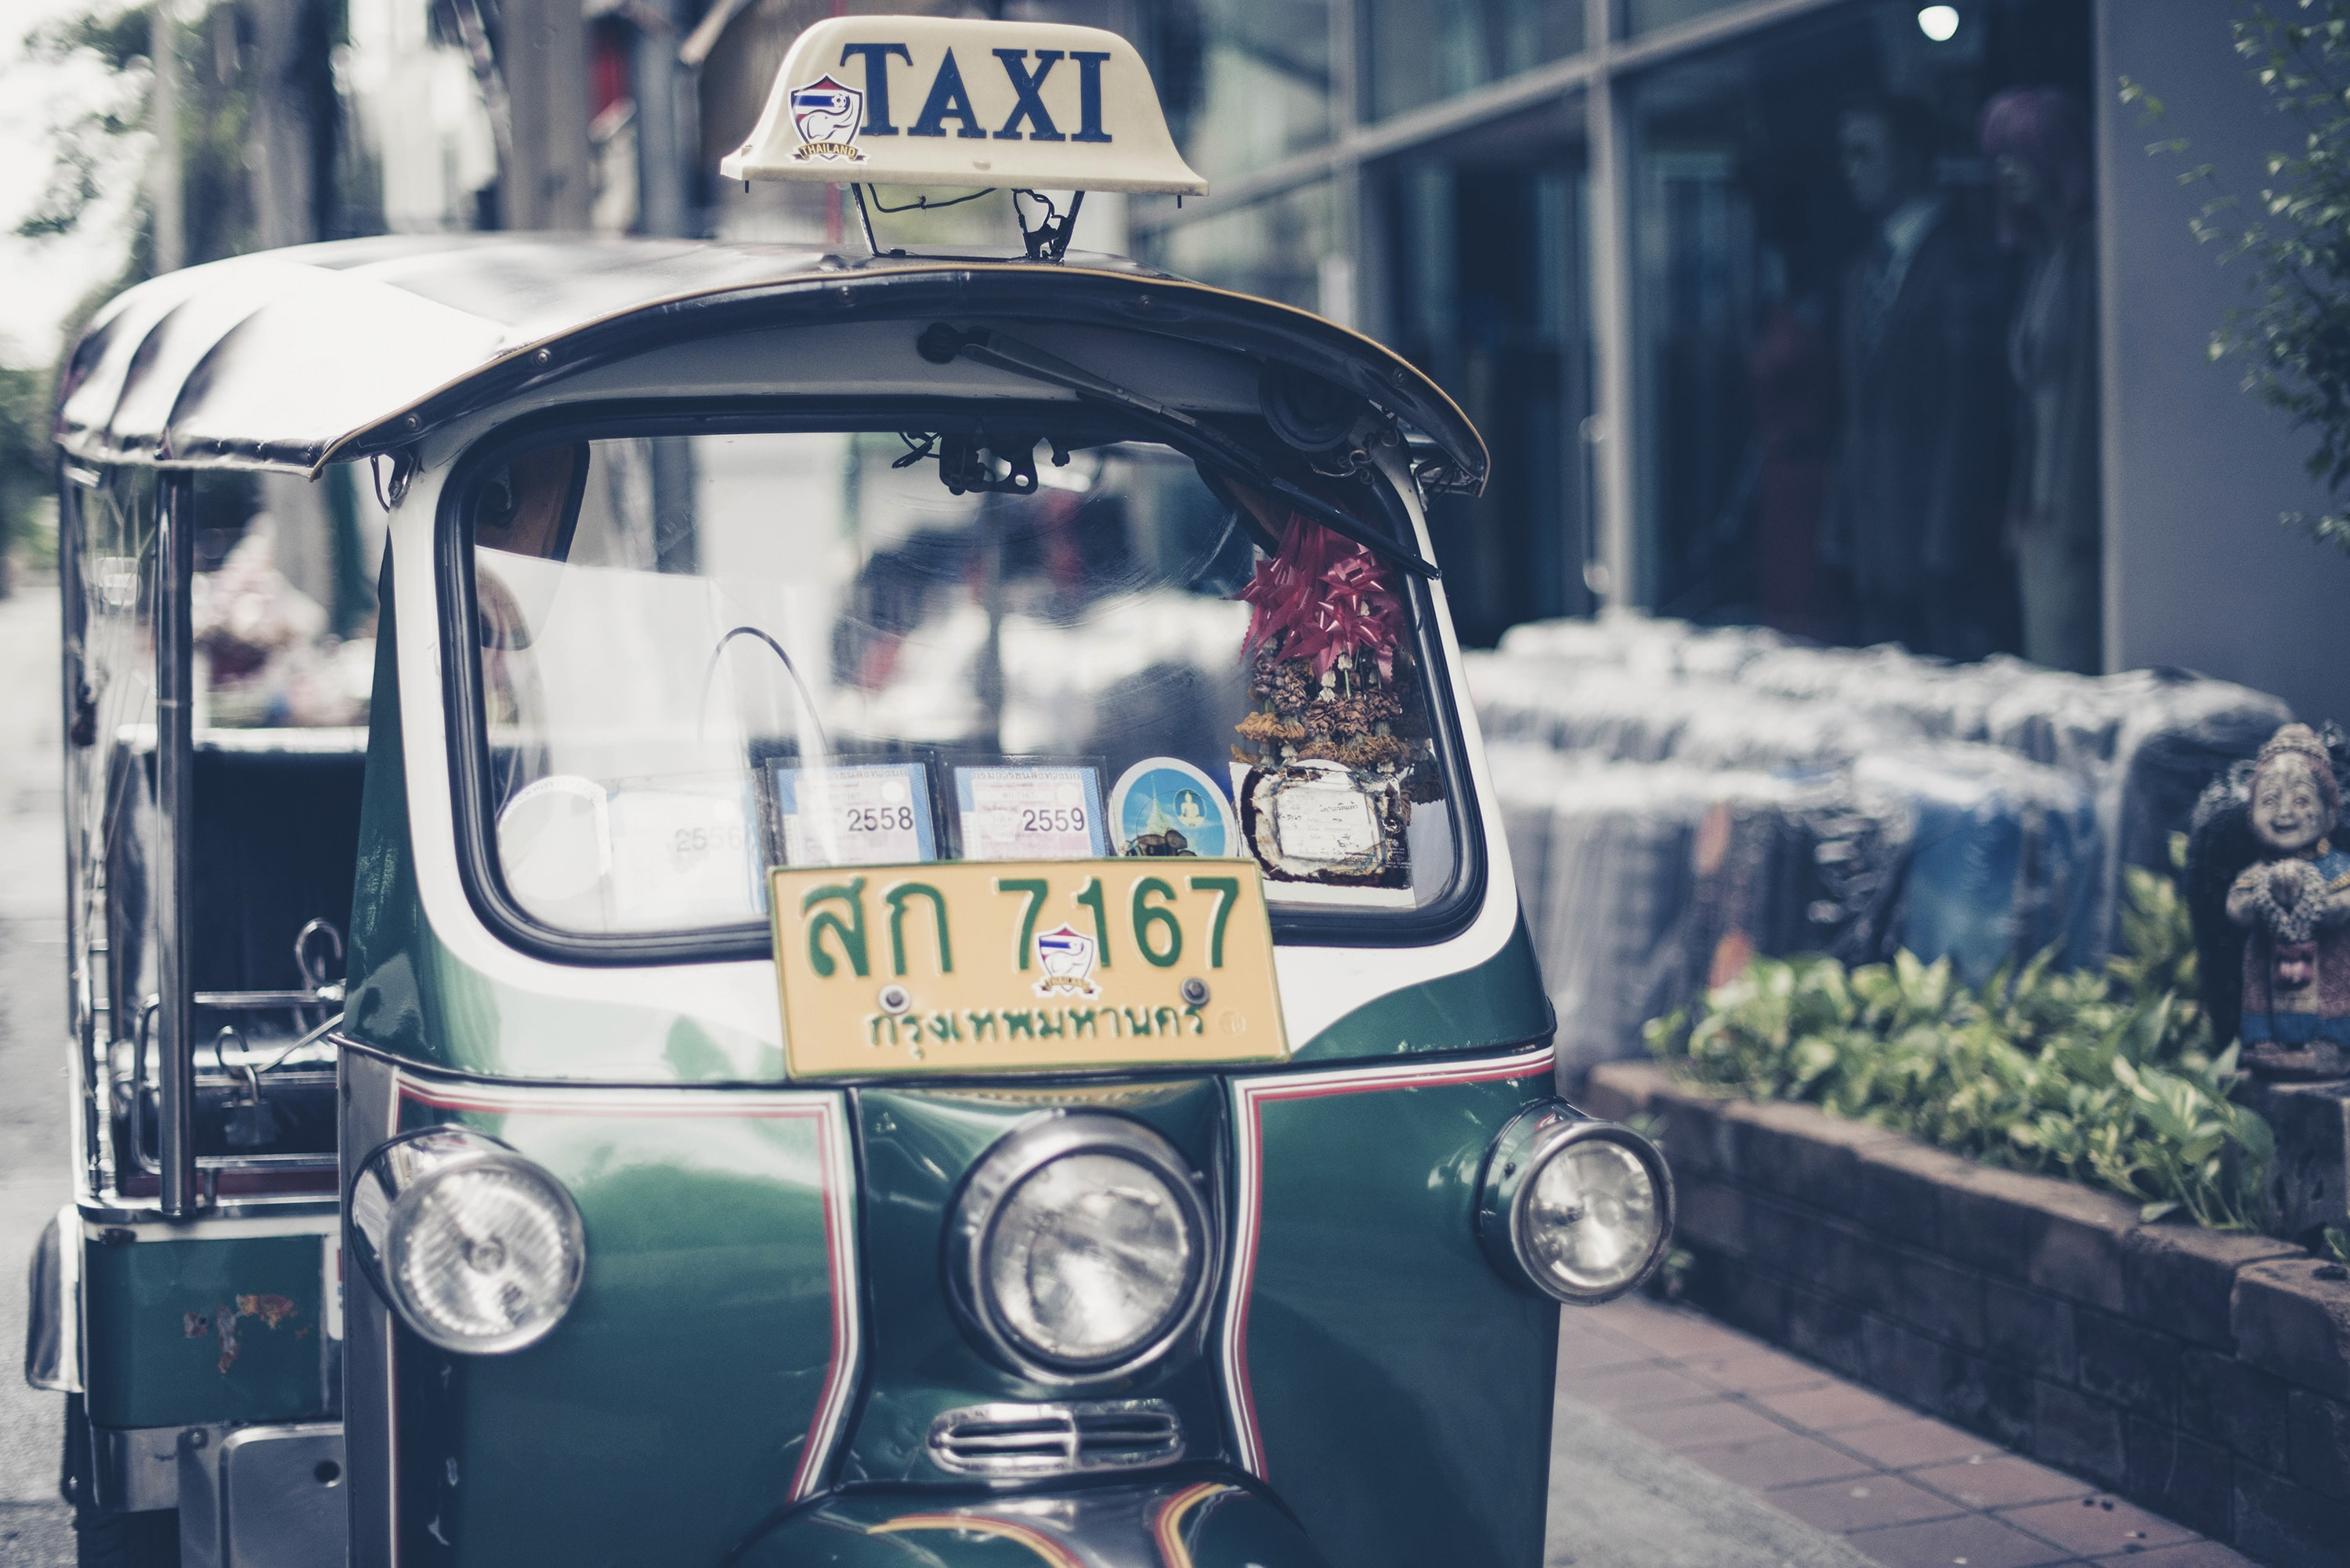 Green taxi in Bangkok with license plate on front sits outside of building near smiling statue